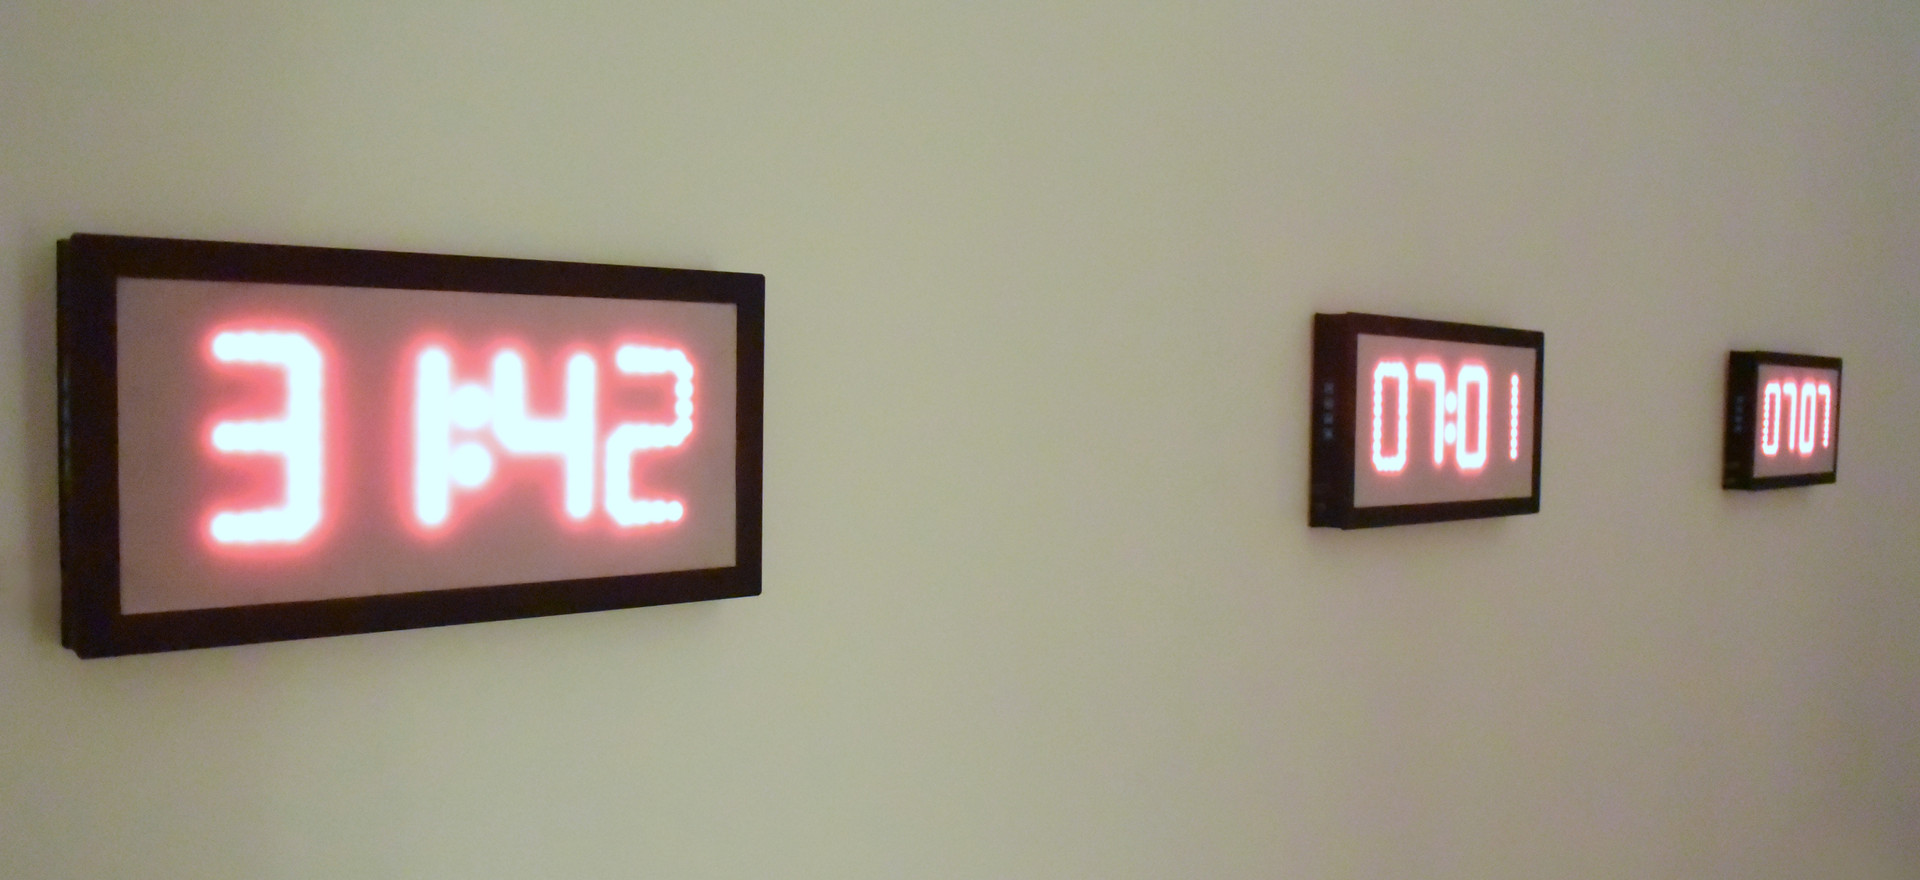 Logic of acceleration, 2017 3 modified clock/ chronometers. 7.87 x 15.74 x 1.96 inches each. 20 x 40 x 5 cm. each.